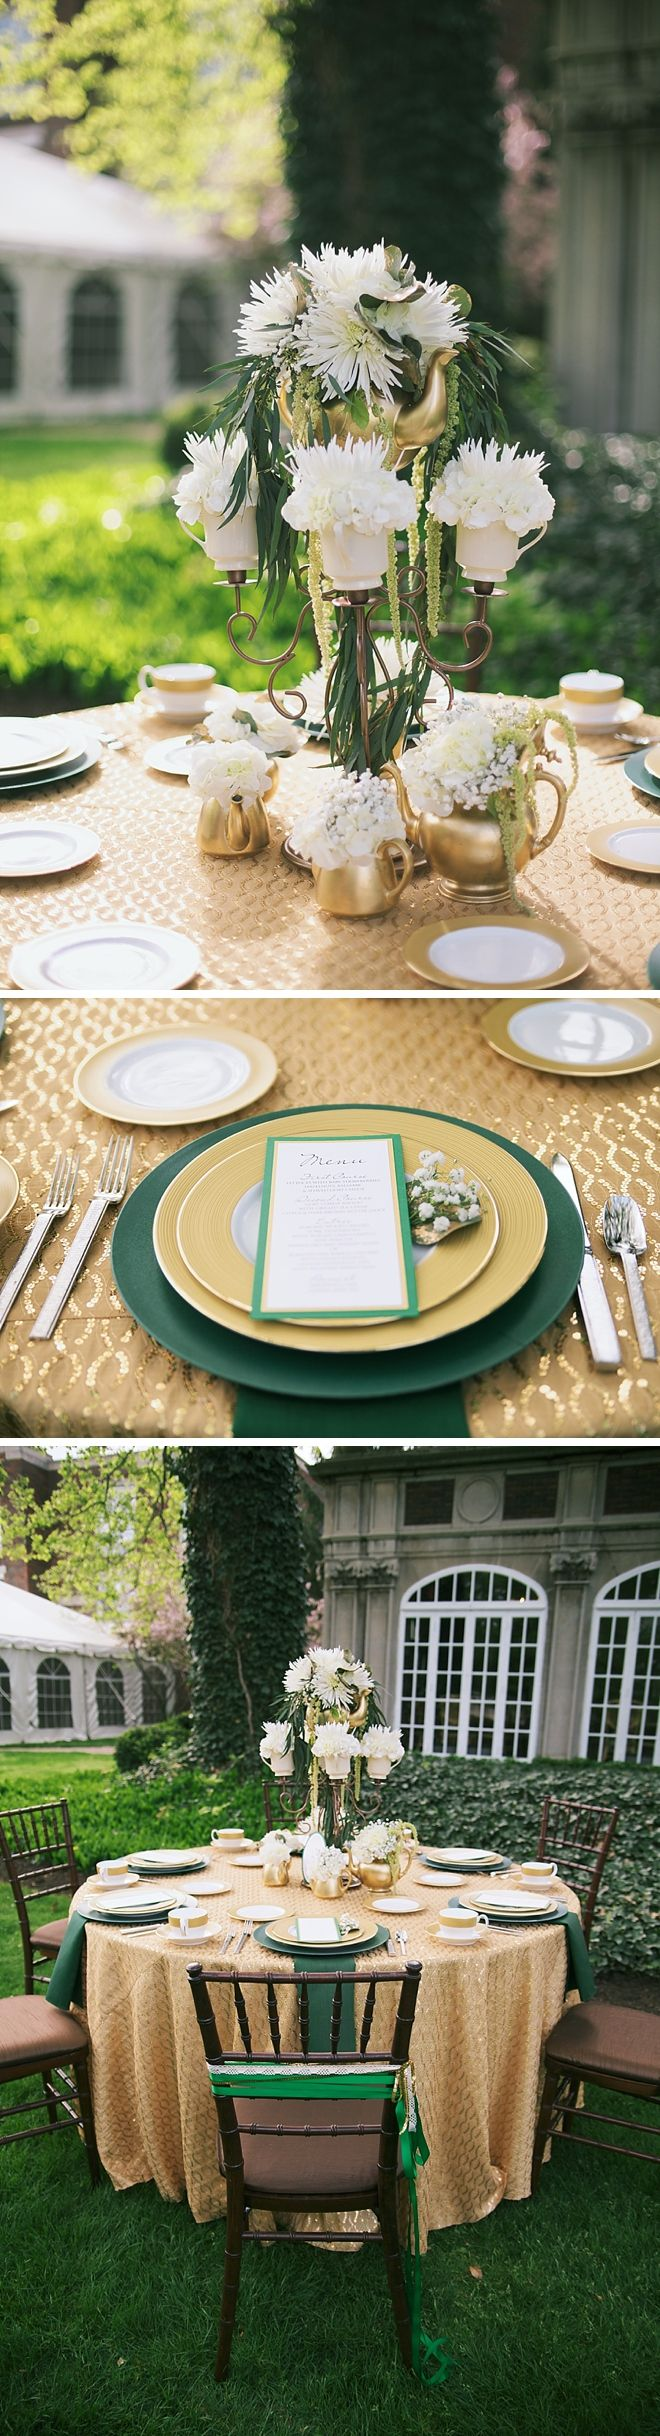 Emerald and Gold Oz-Themed Wedding Inspiration by Lane Baldwin Photography